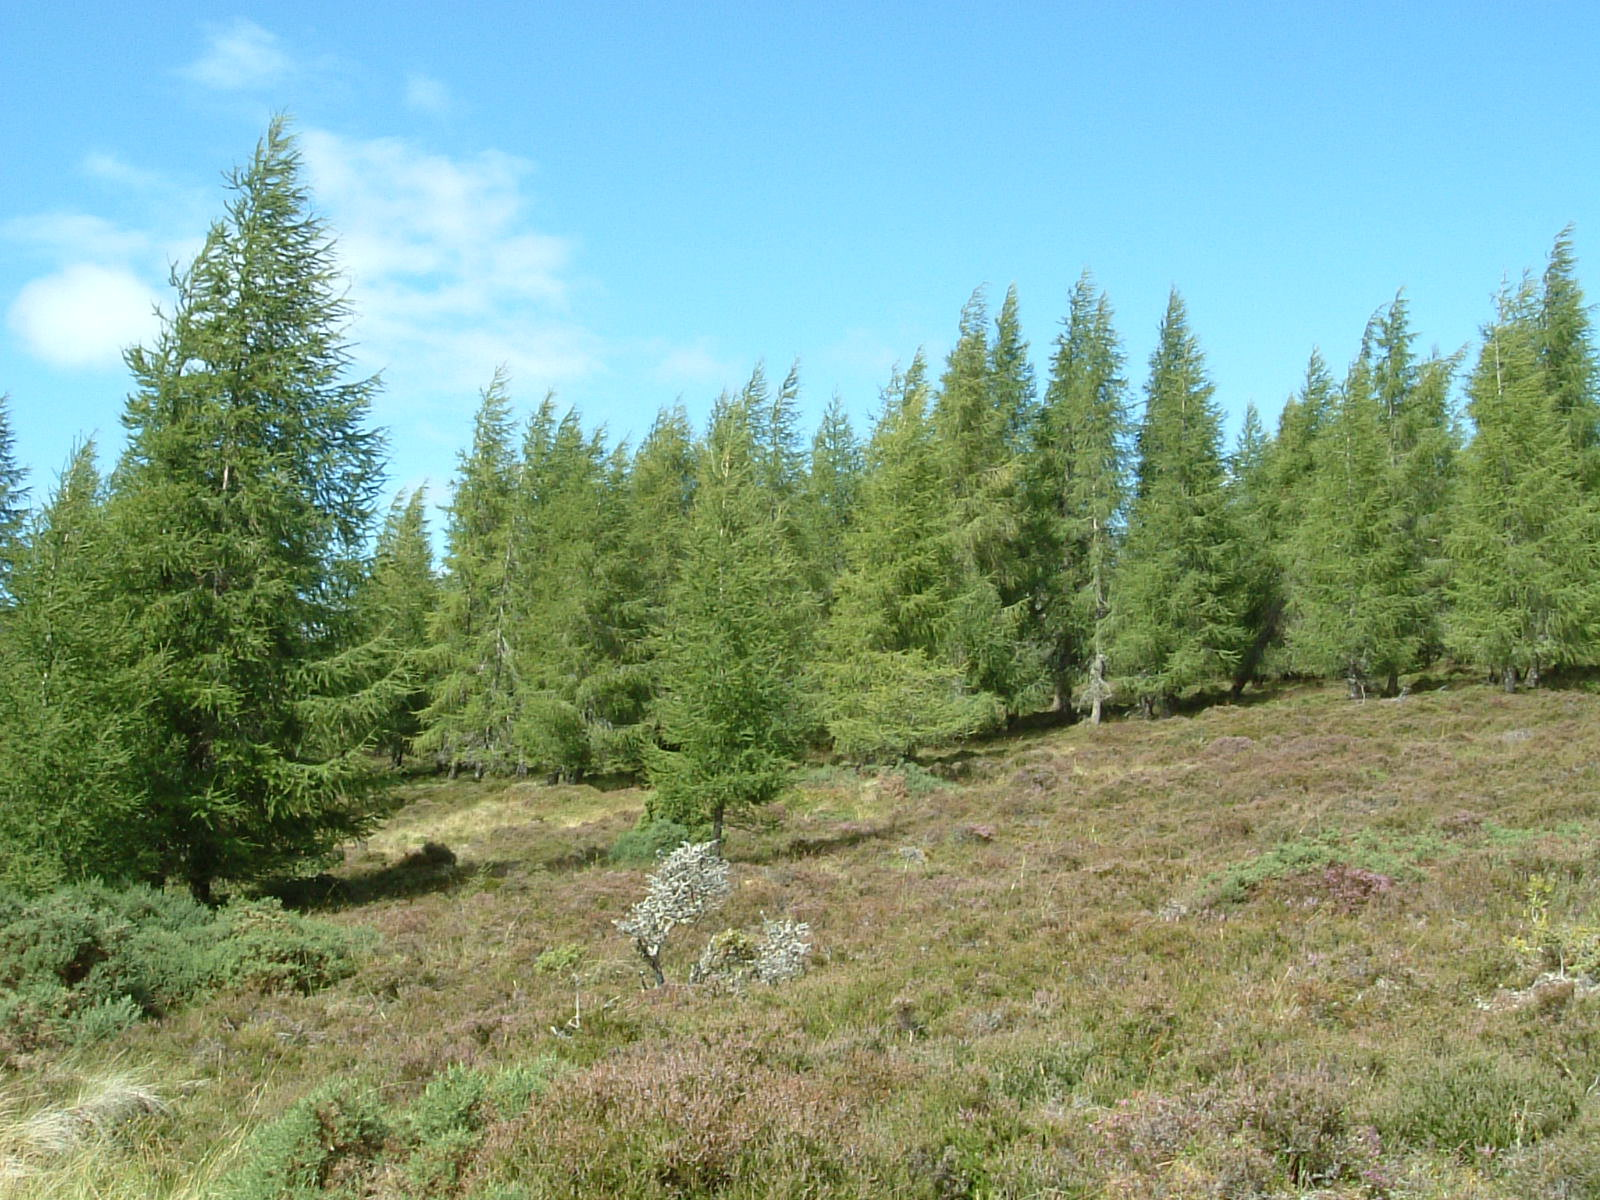 Heather and pine on the Great Glen Way